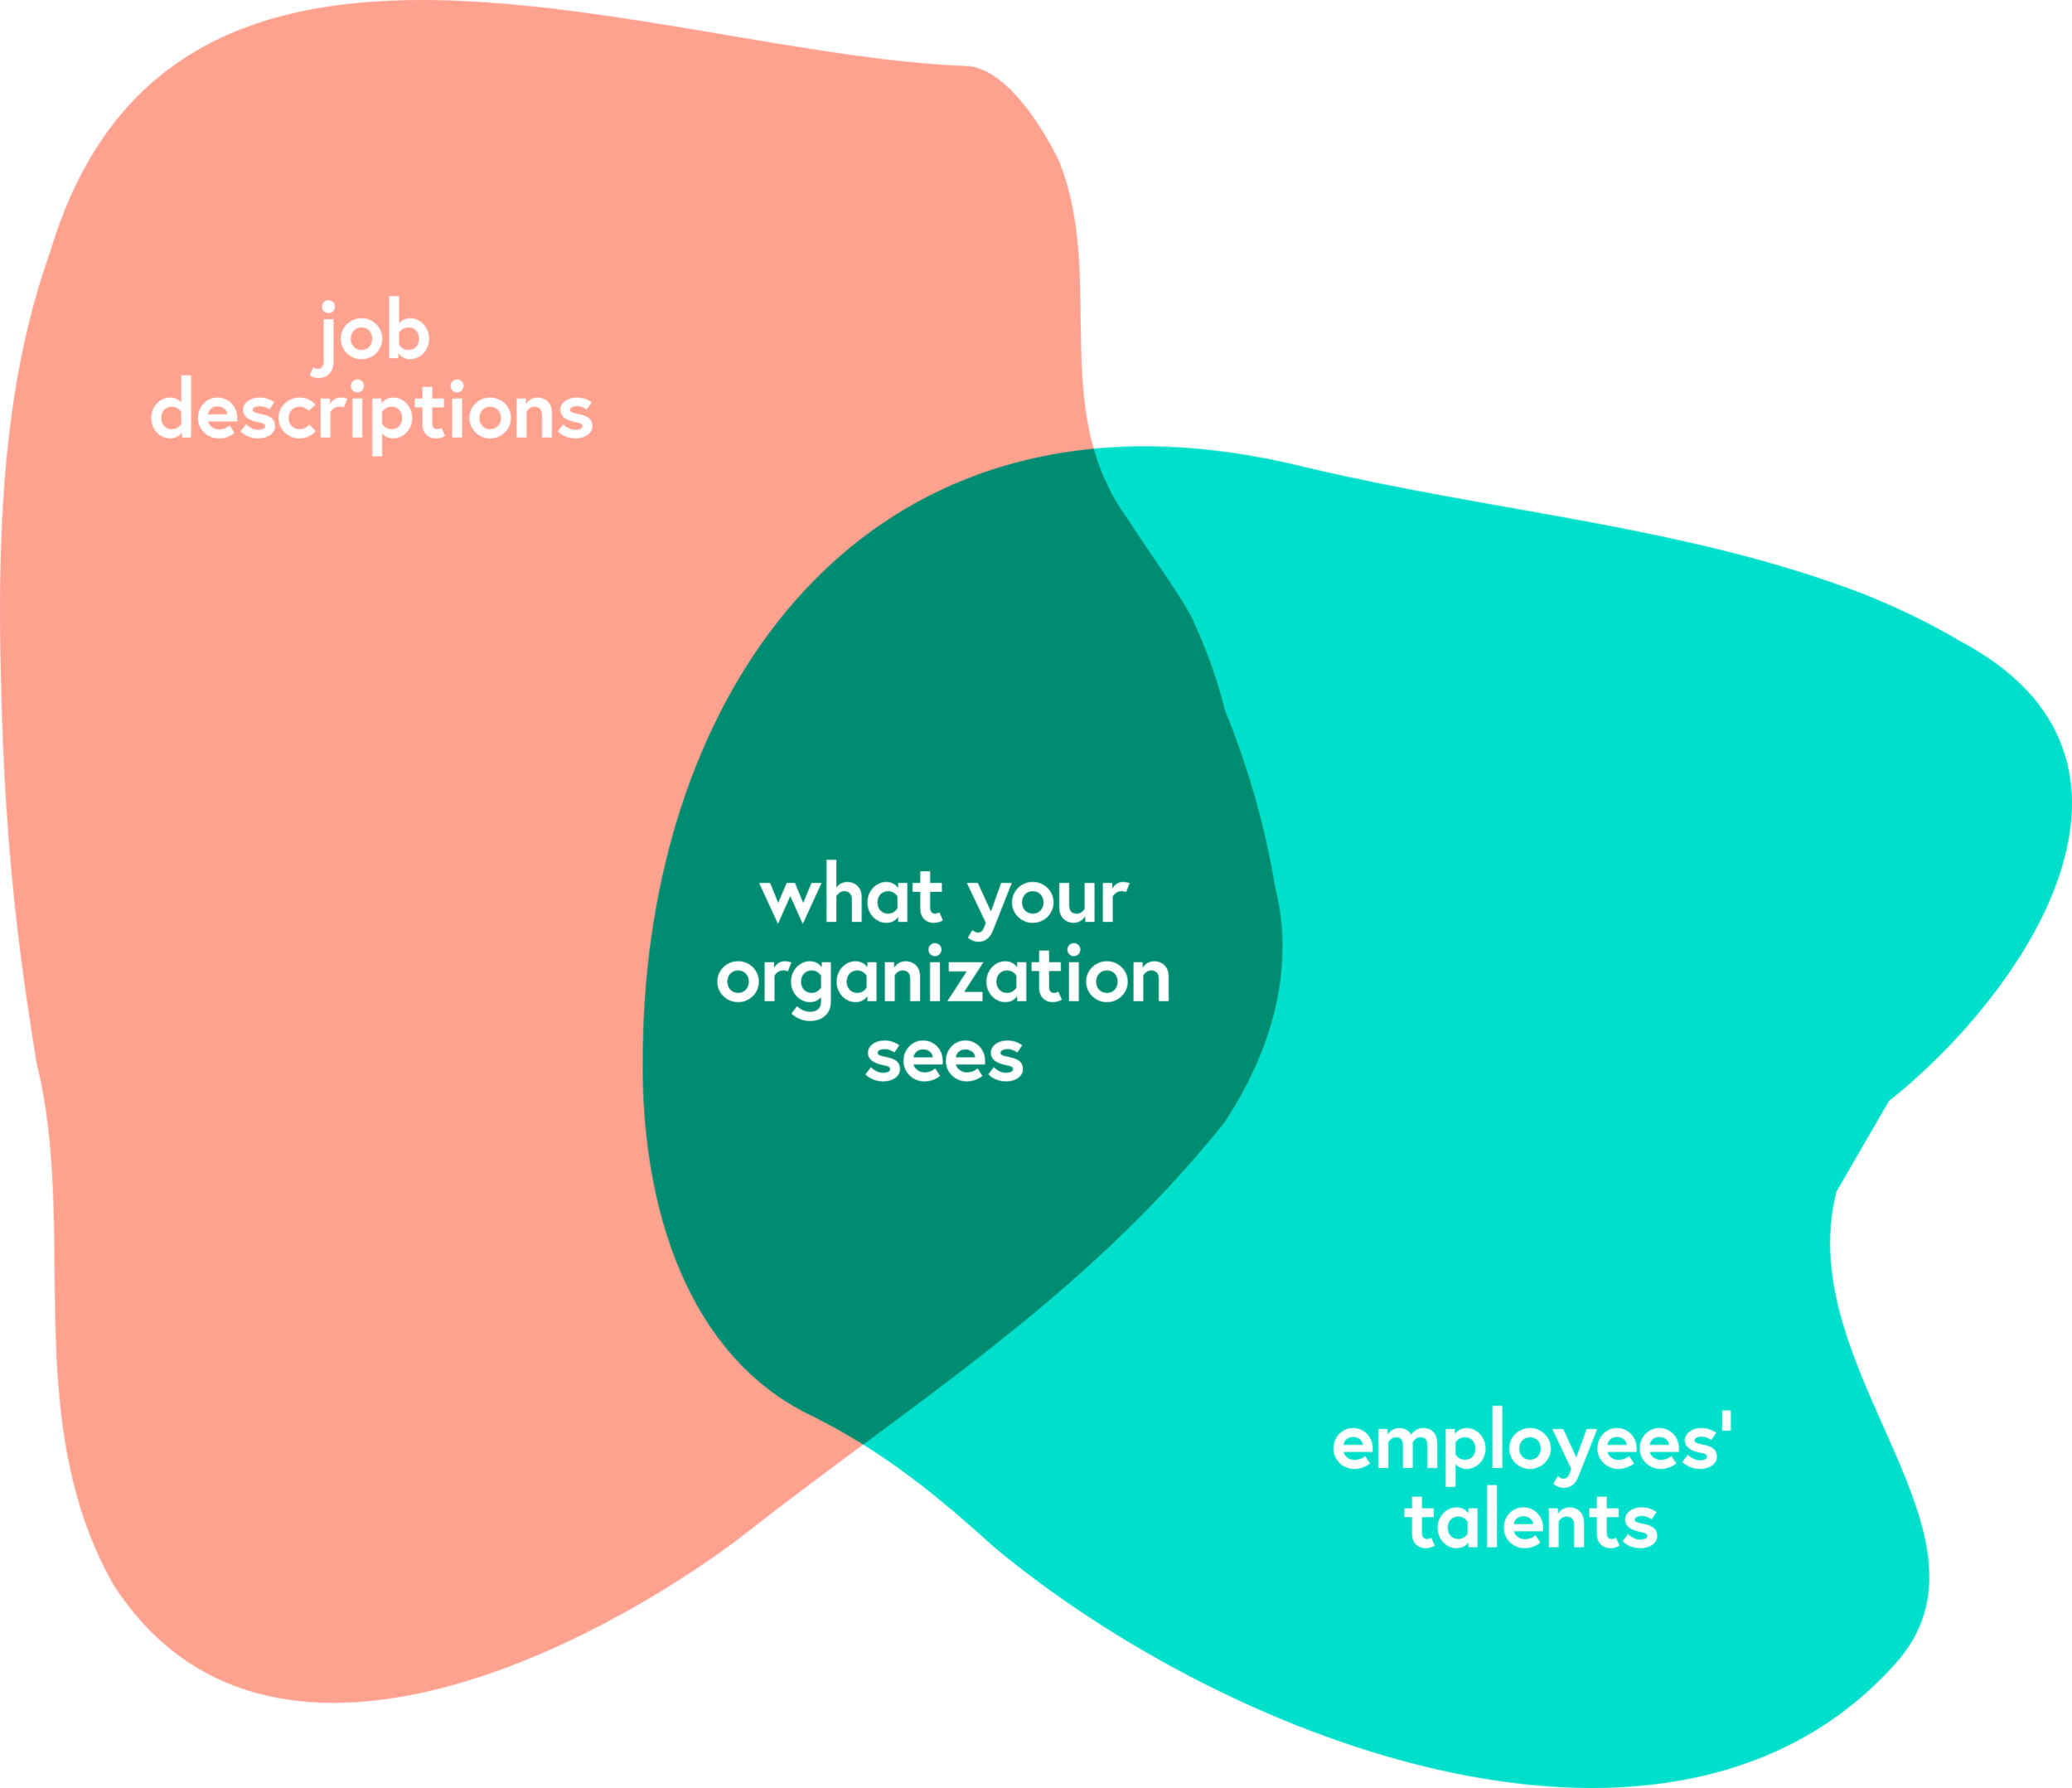 A Venn Diagram: Job descriptions vs. Employees' talents - the overlap is what your organization sees.